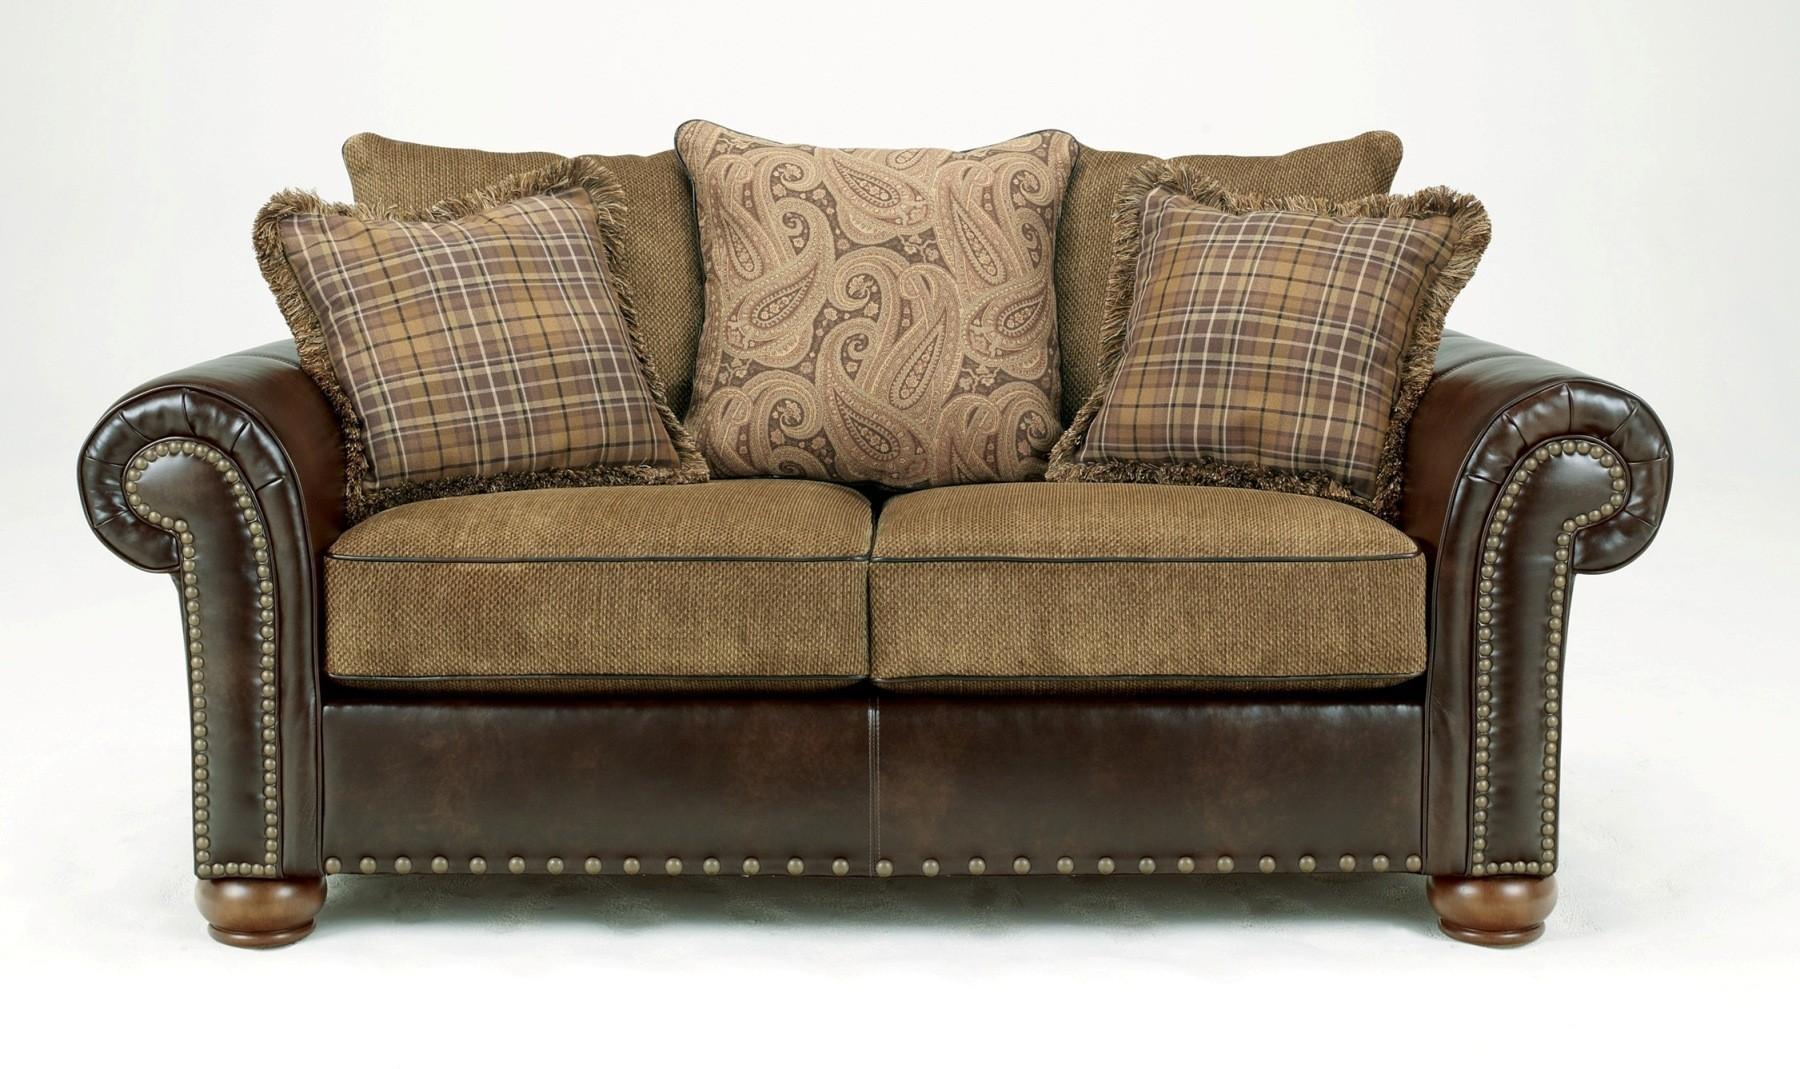 Bradington Truffle Sofa | Sofa Gallery | Kengire Throughout Bradington Truffle Sofas (Image 10 of 20)